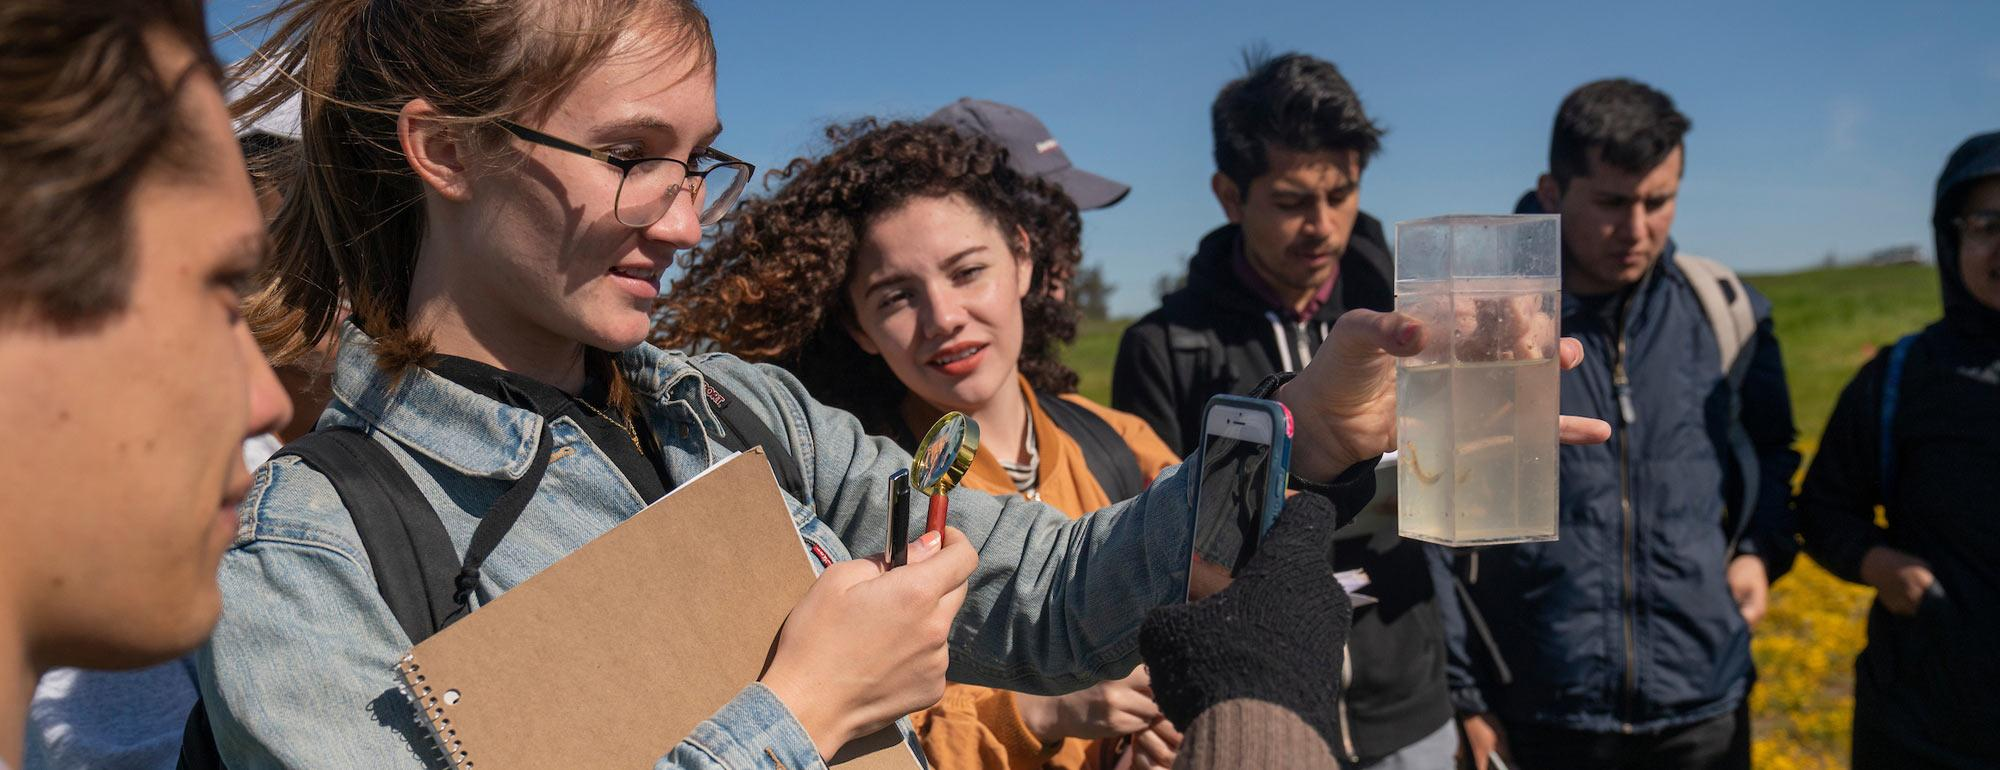 Students examine a field specimen